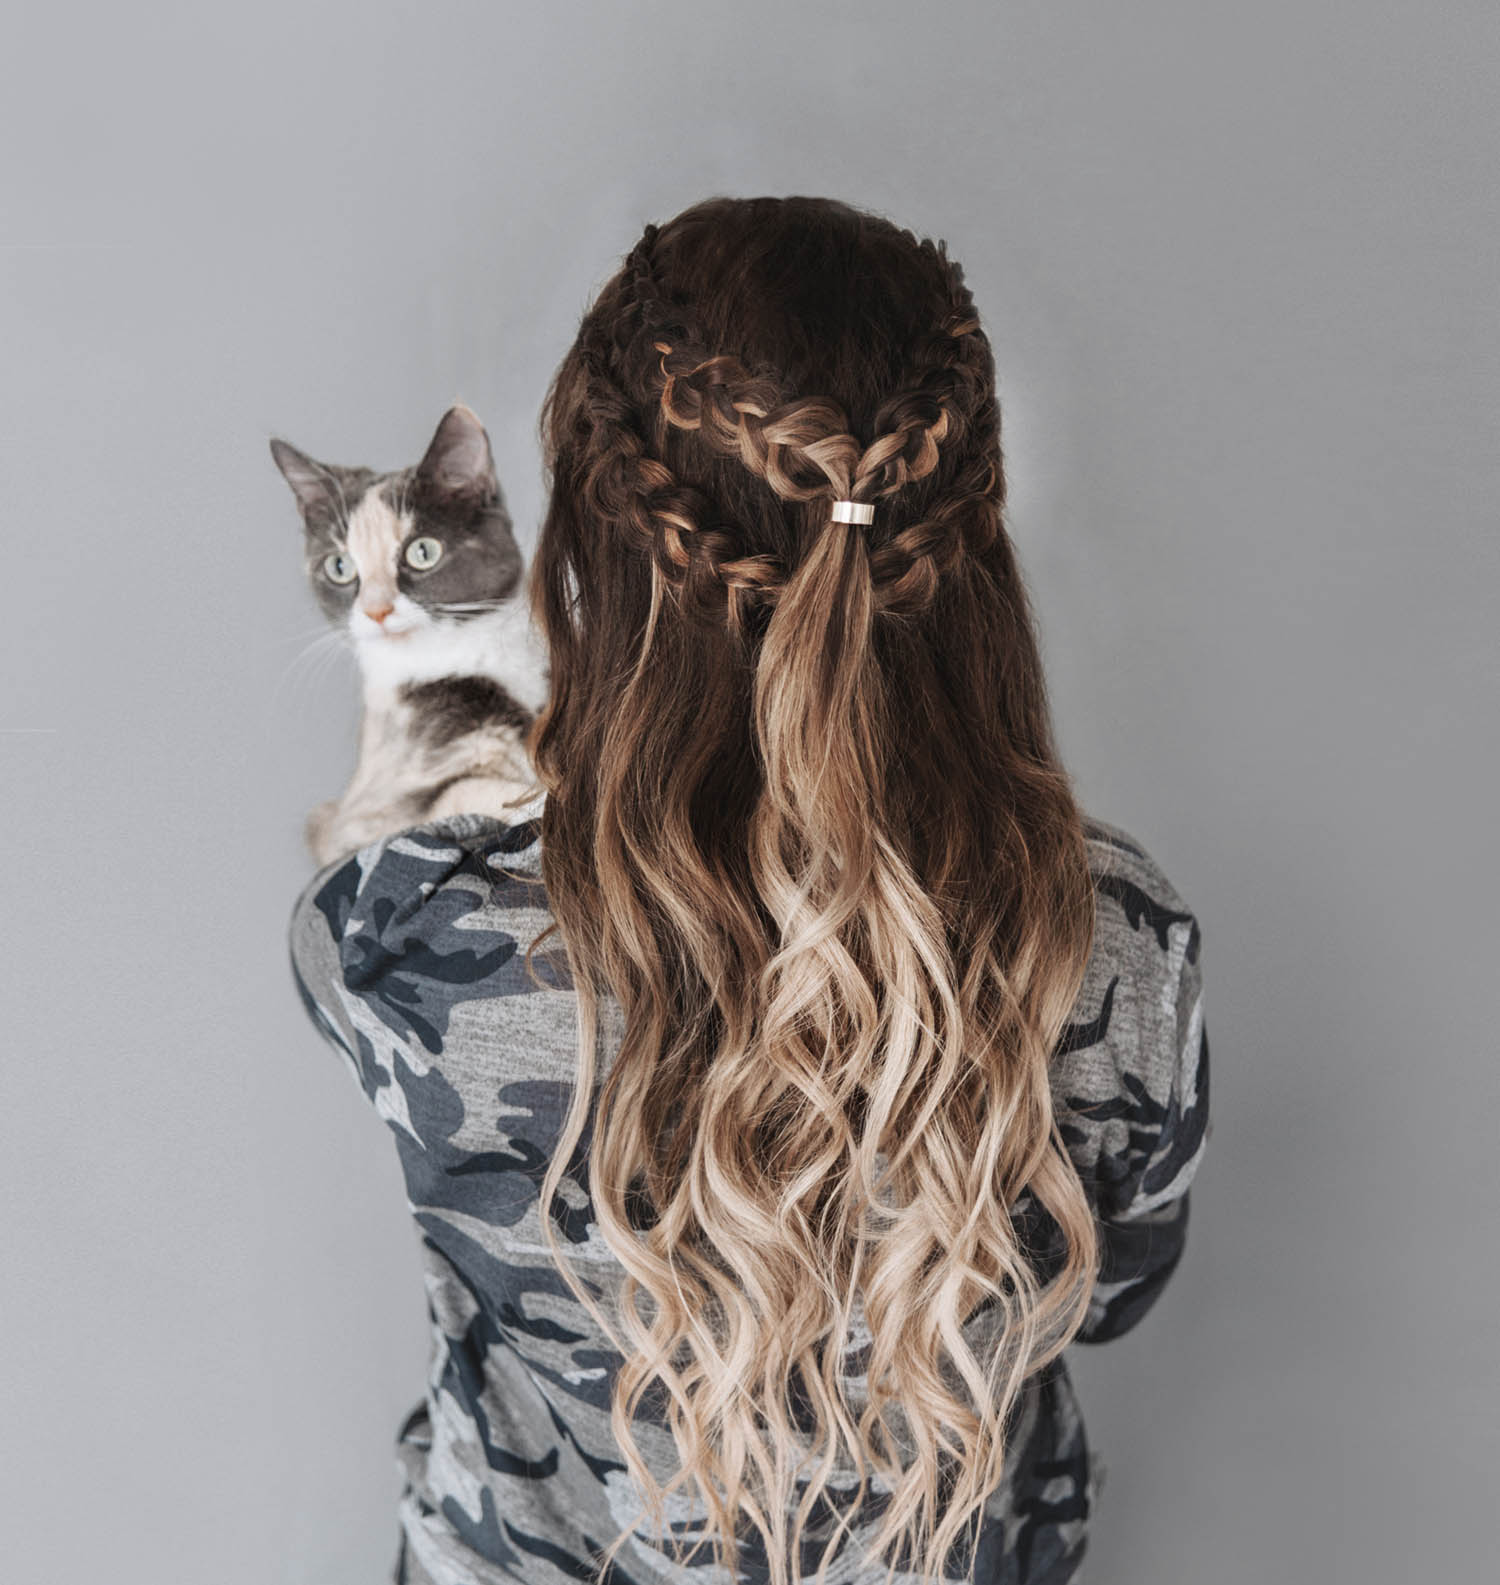 Tutorial: How to get a Khaleesi Hairstyle with braids - in 6 Simple Steps